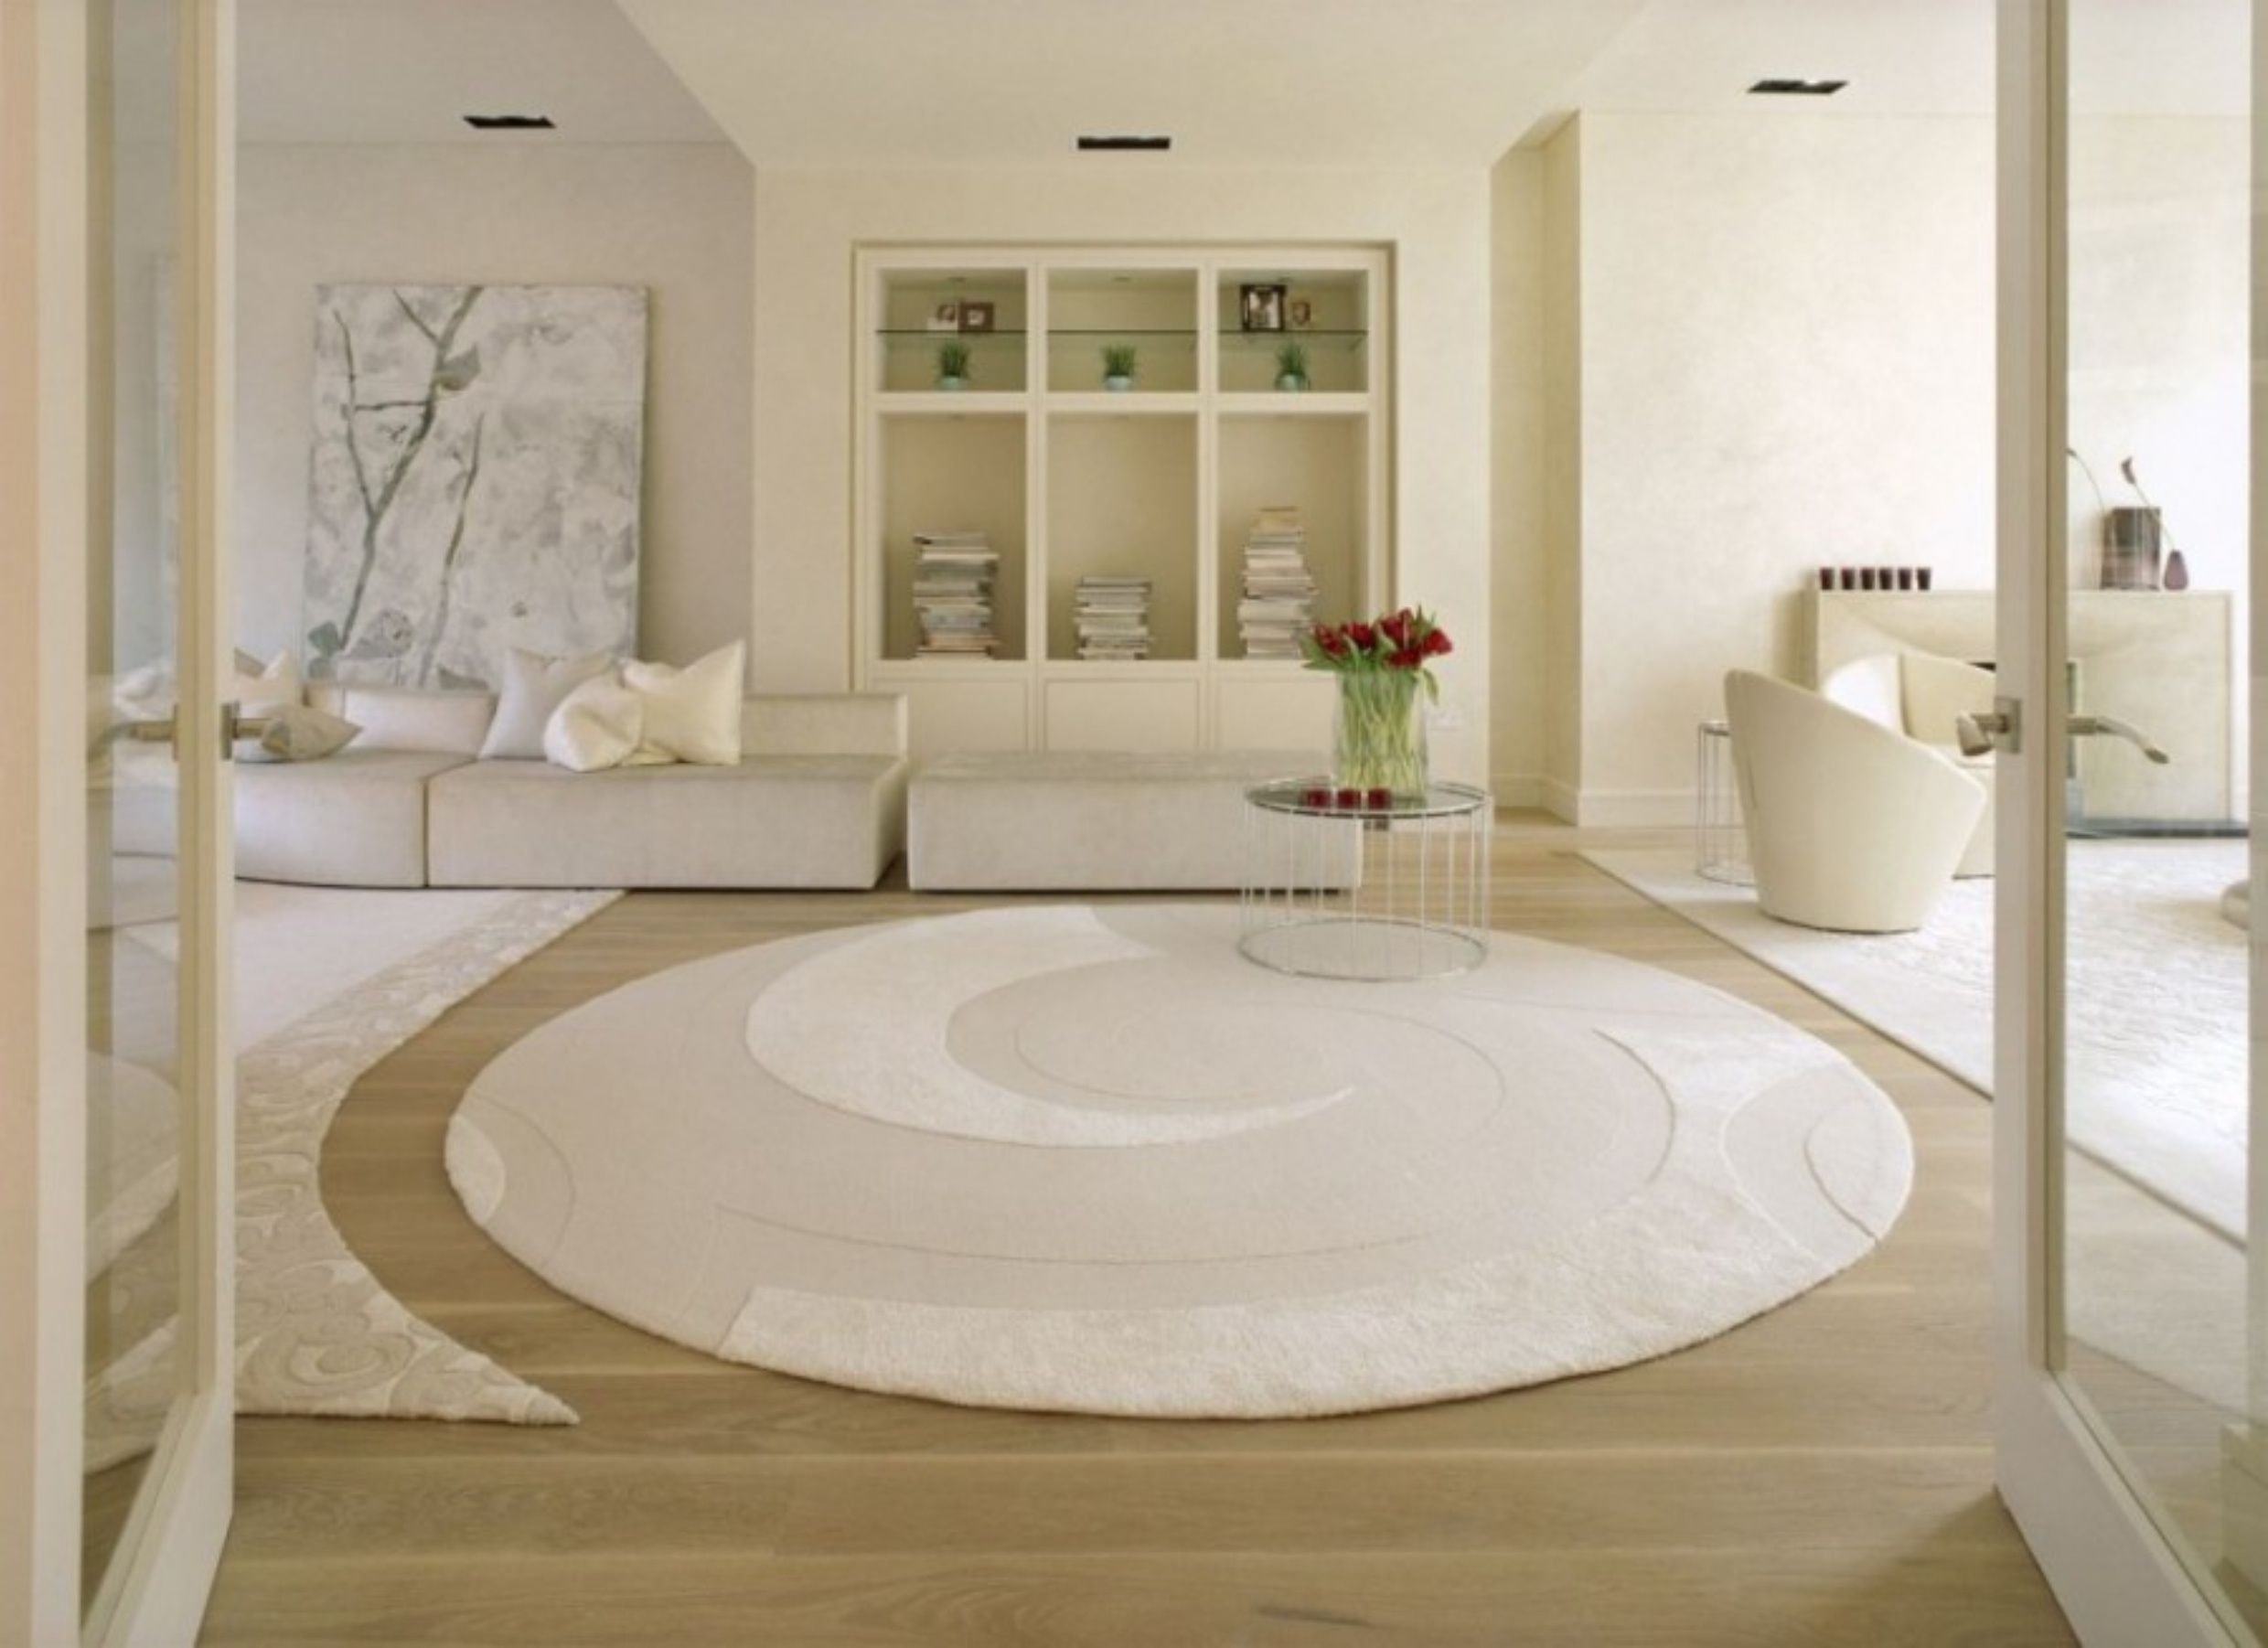 White Round Extra Large Bathroom Rug Large Bathroom Rugs - Bathroom area rugs for bathroom decorating ideas